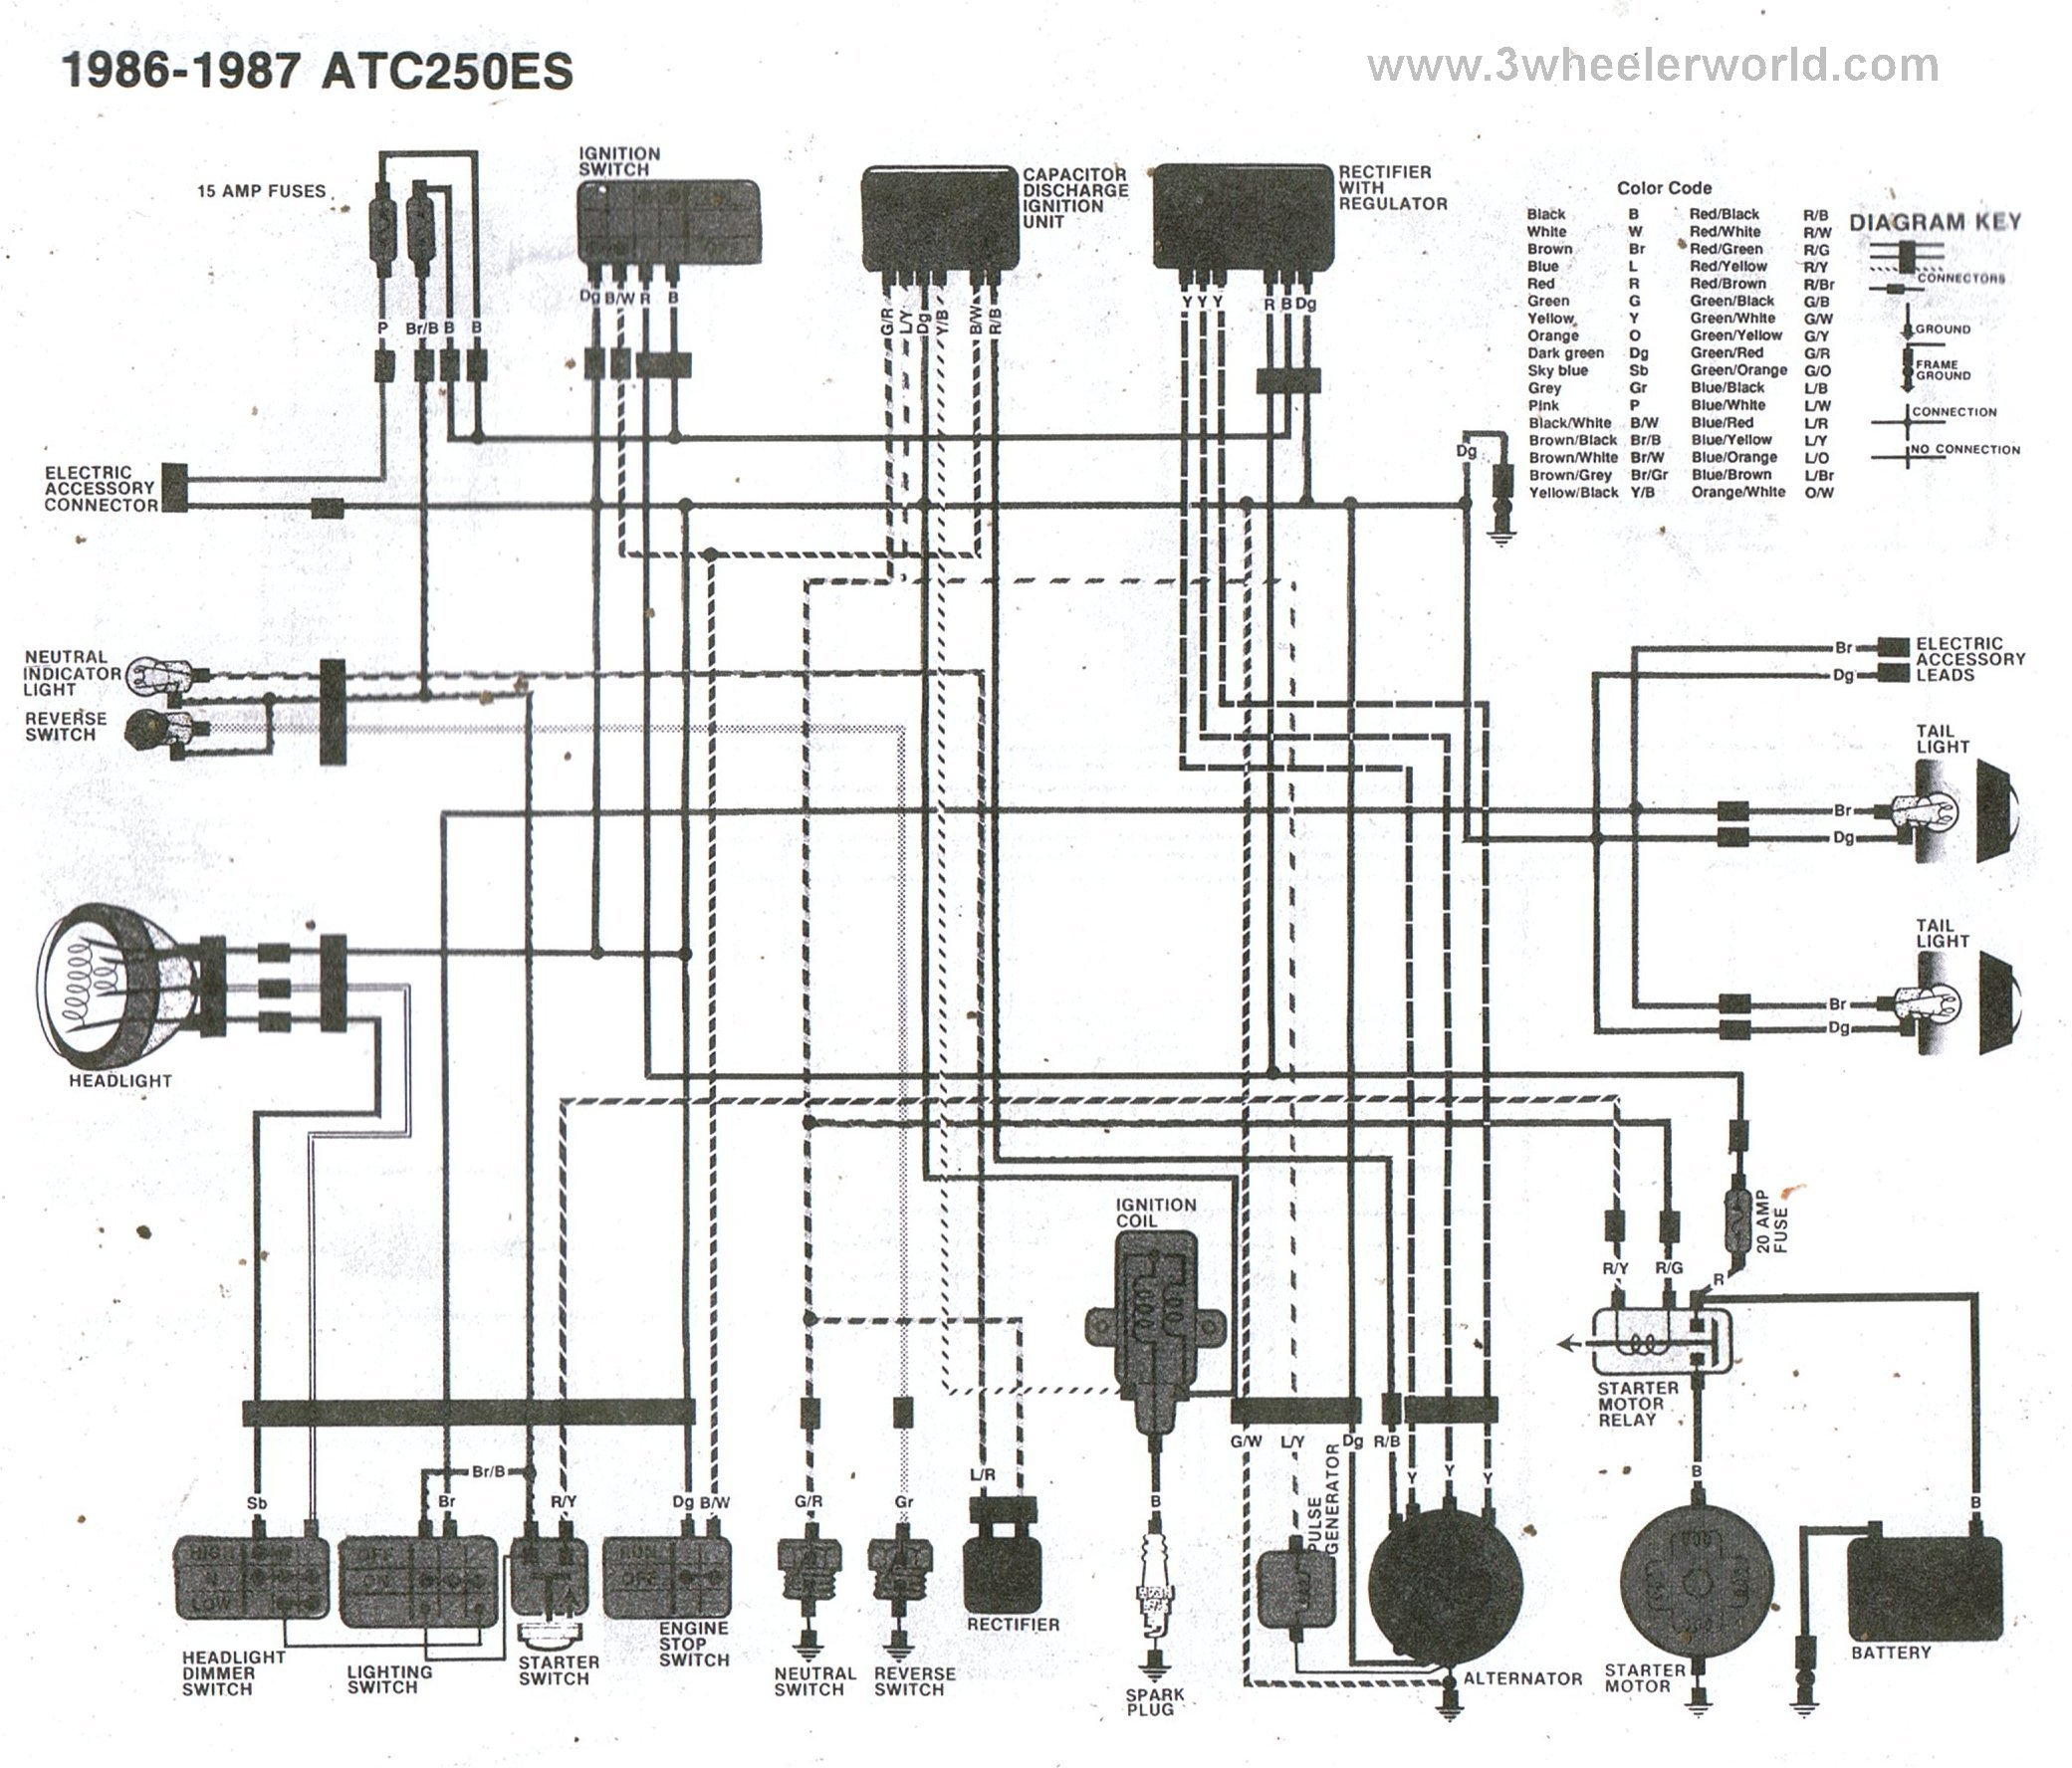 ATC250ESx86Thru87 3 wheeler world tech help honda wiring diagrams yamaha moto 4 250 wiring diagrams at mr168.co